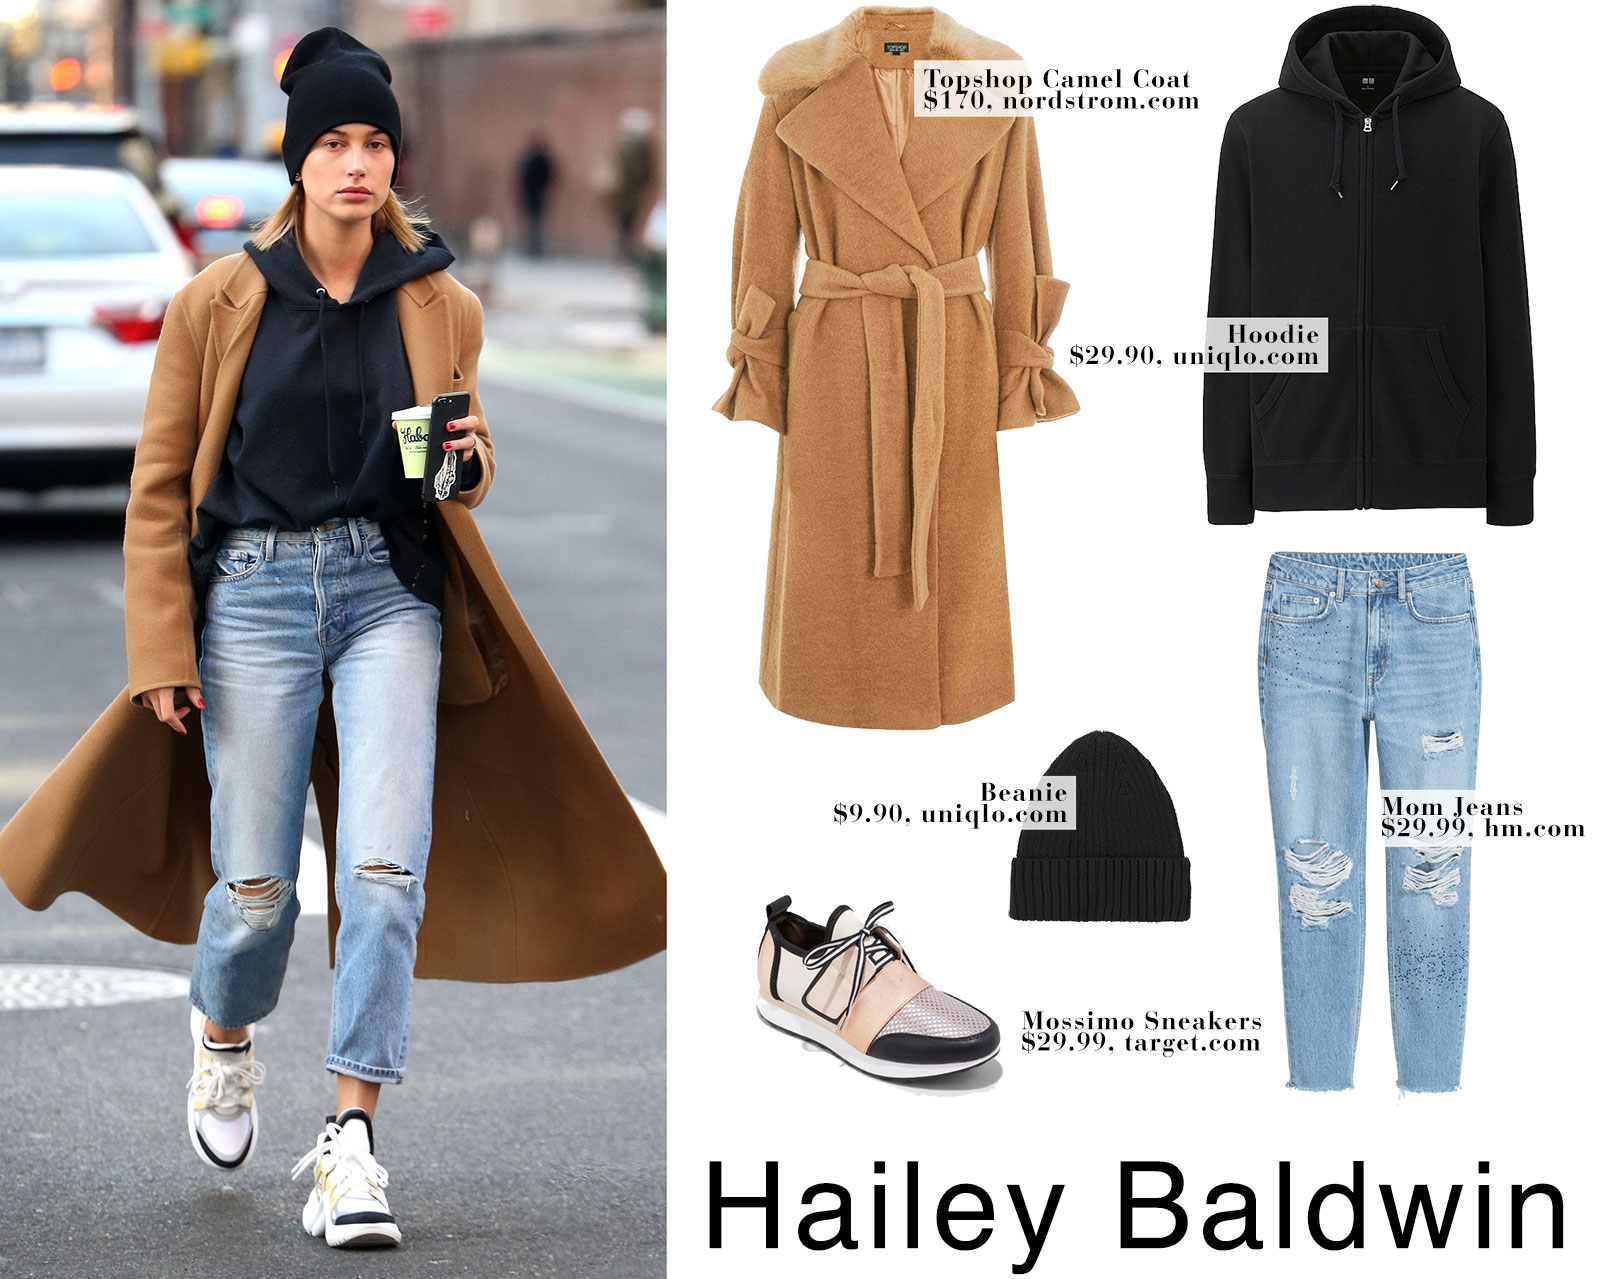 e6567f1872 Hailey Baldwin s Camel Coat and Mom Jeans Look for Less